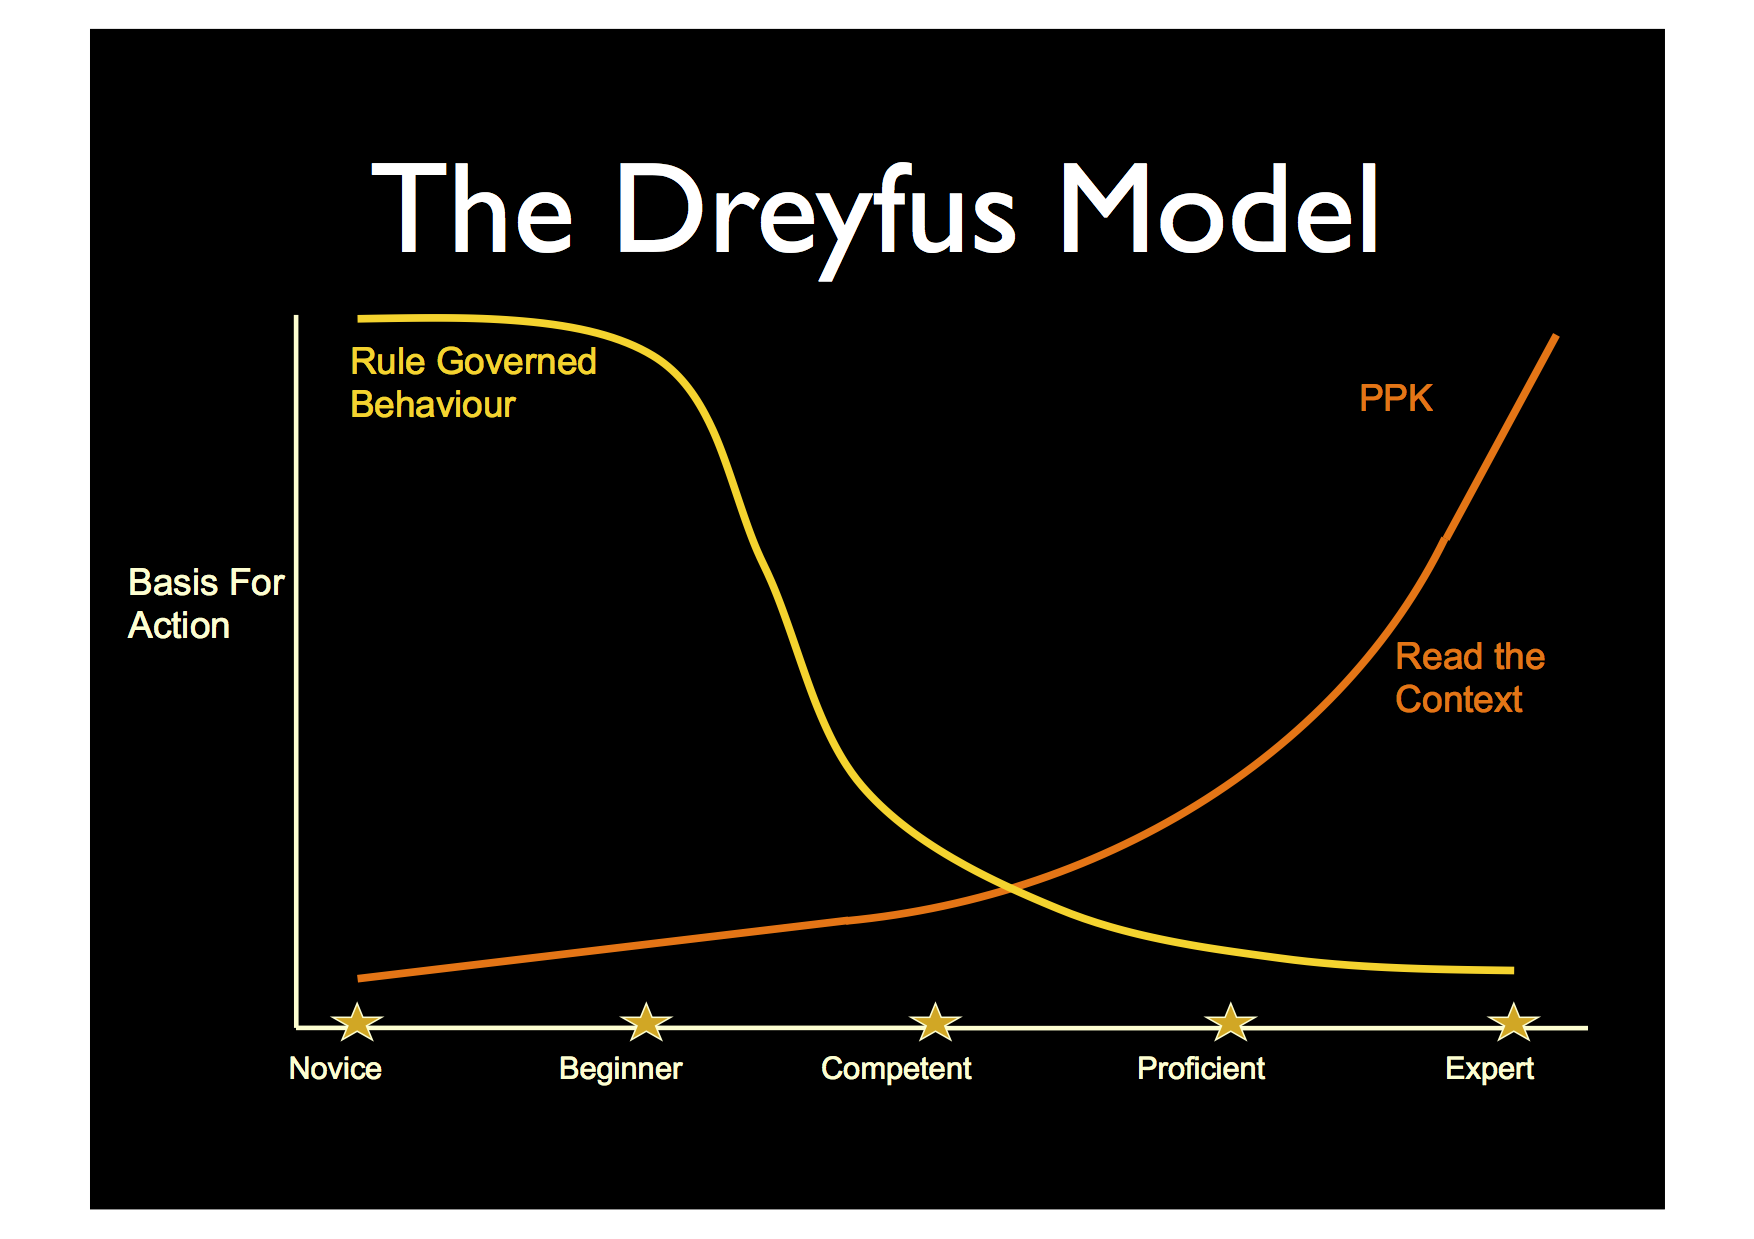 Dreyfus model of skill acquisition. Image from John Edwards, Bill Martin OUREducation Newtork